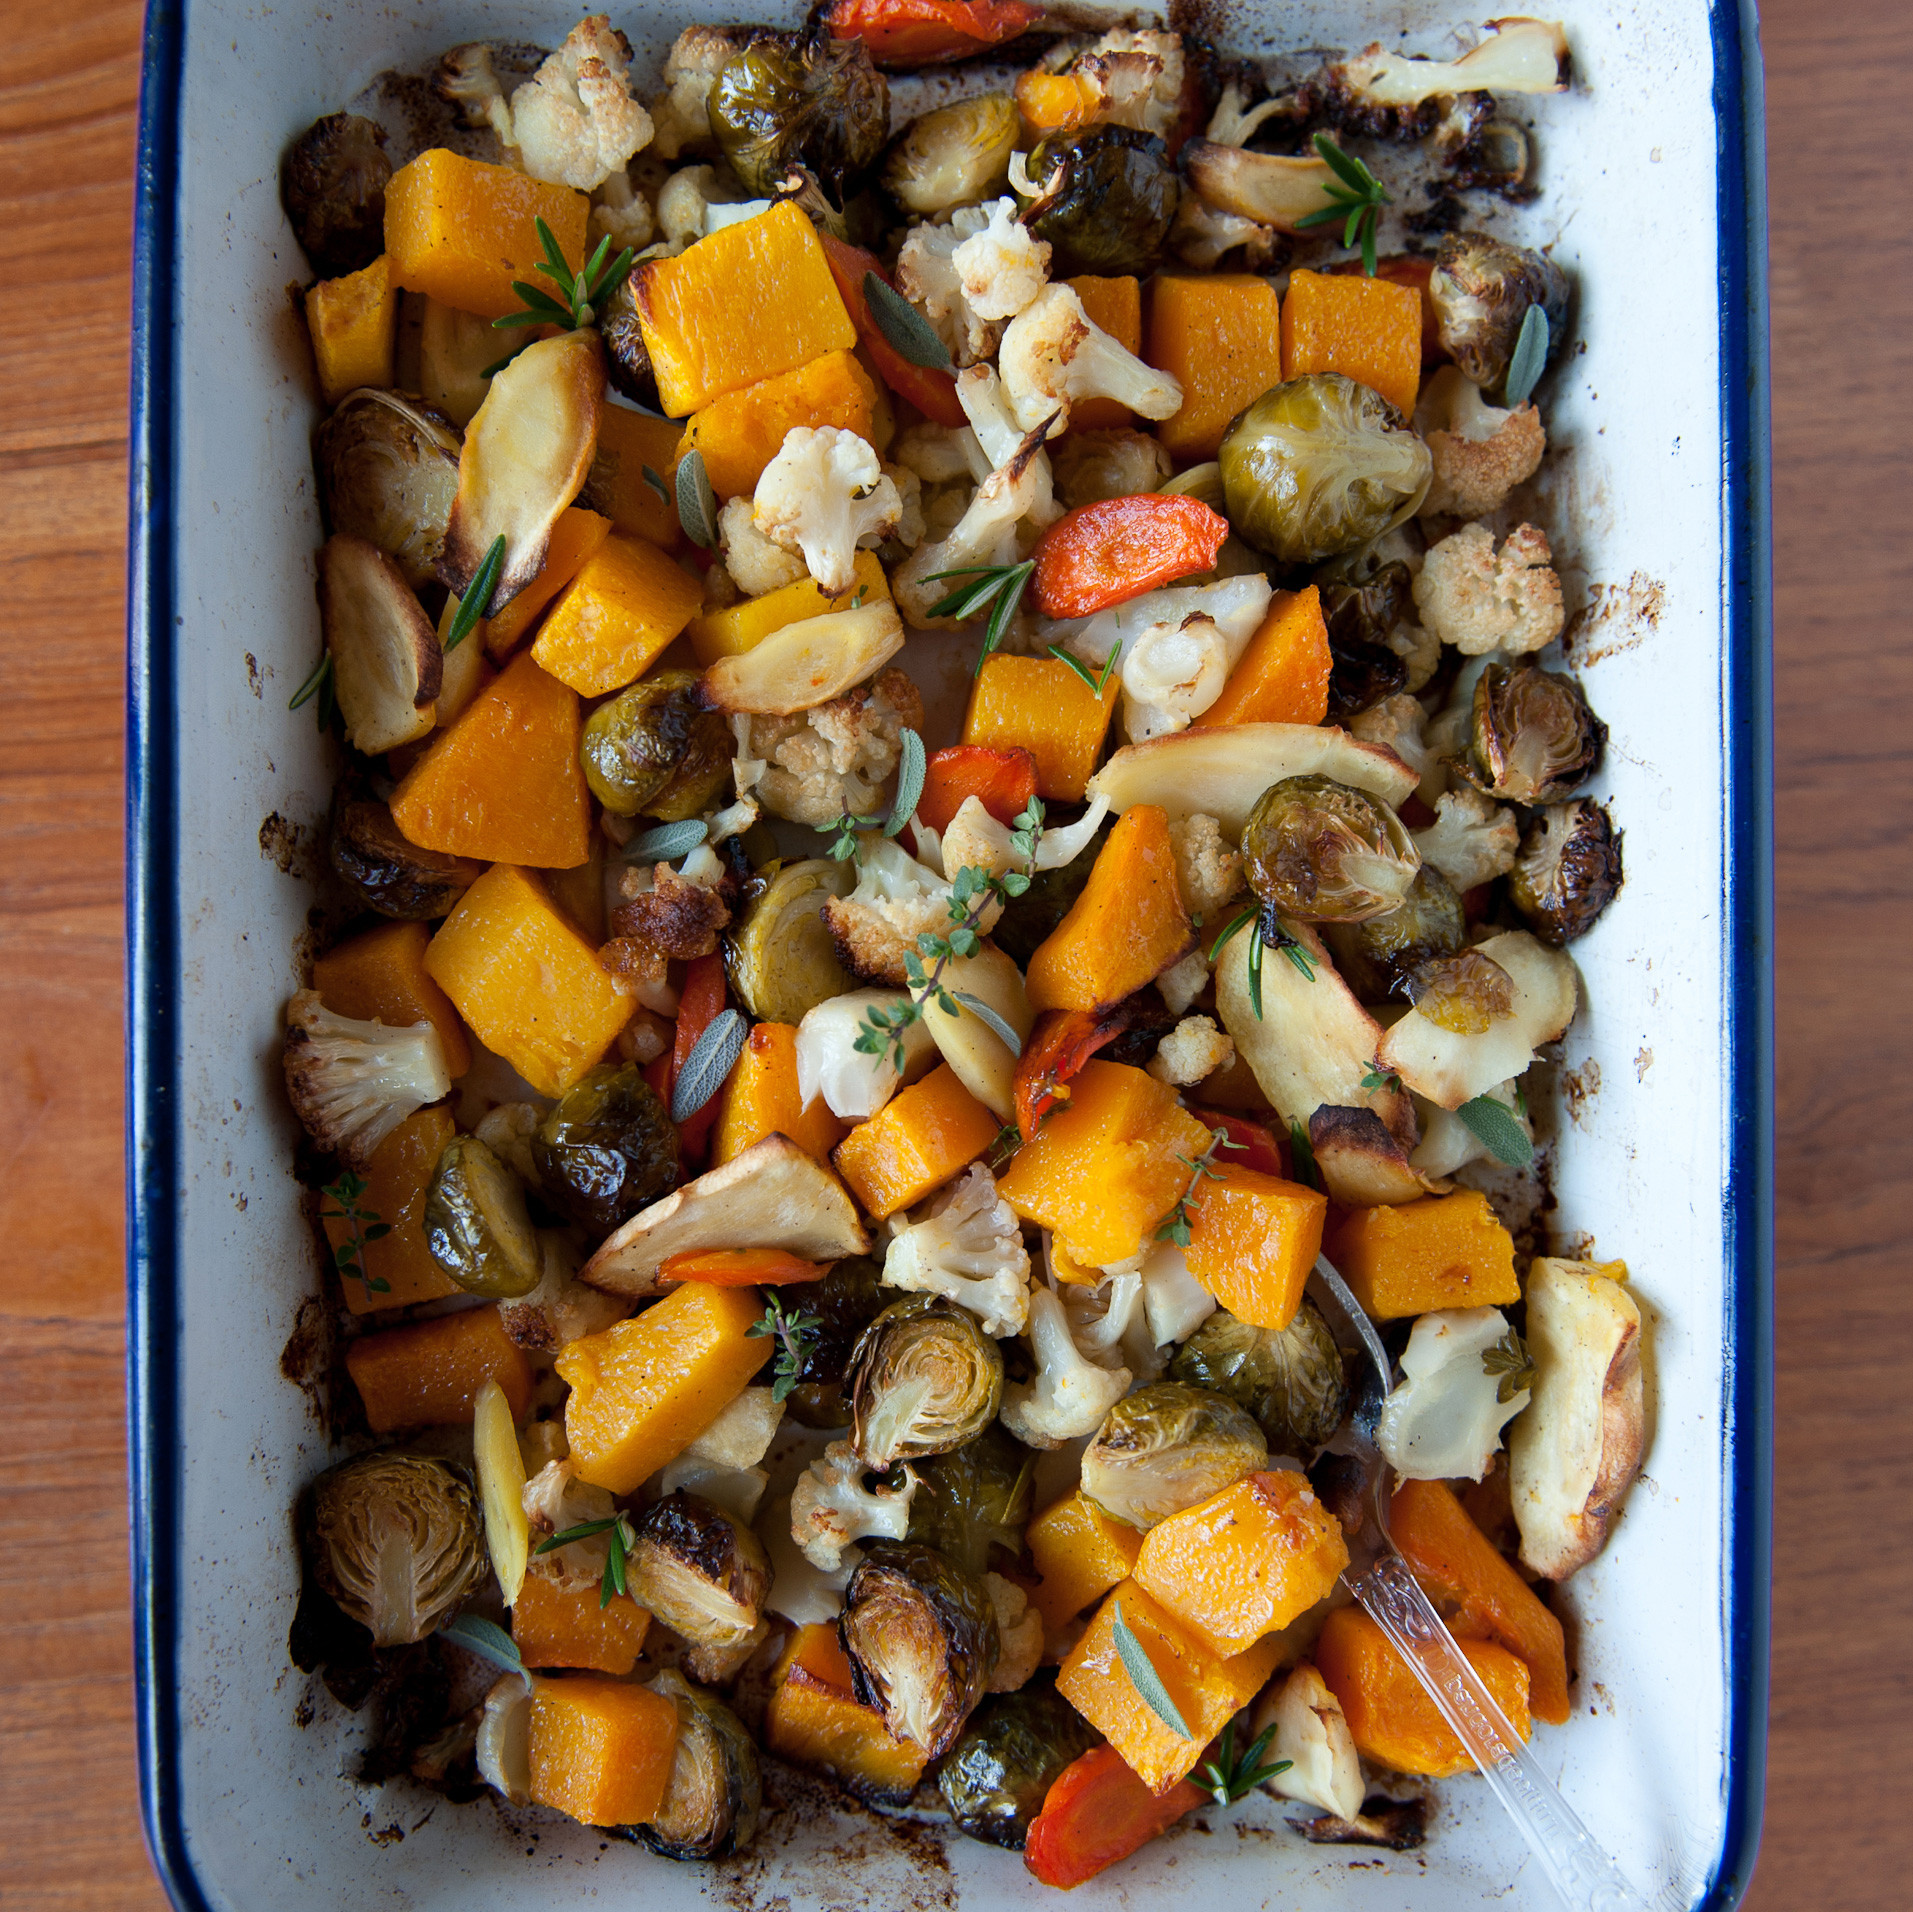 Roasted Vegetables For Thanksgiving  Roasted Ve ables with Fresh Herbs Recipe Melissa Rubel